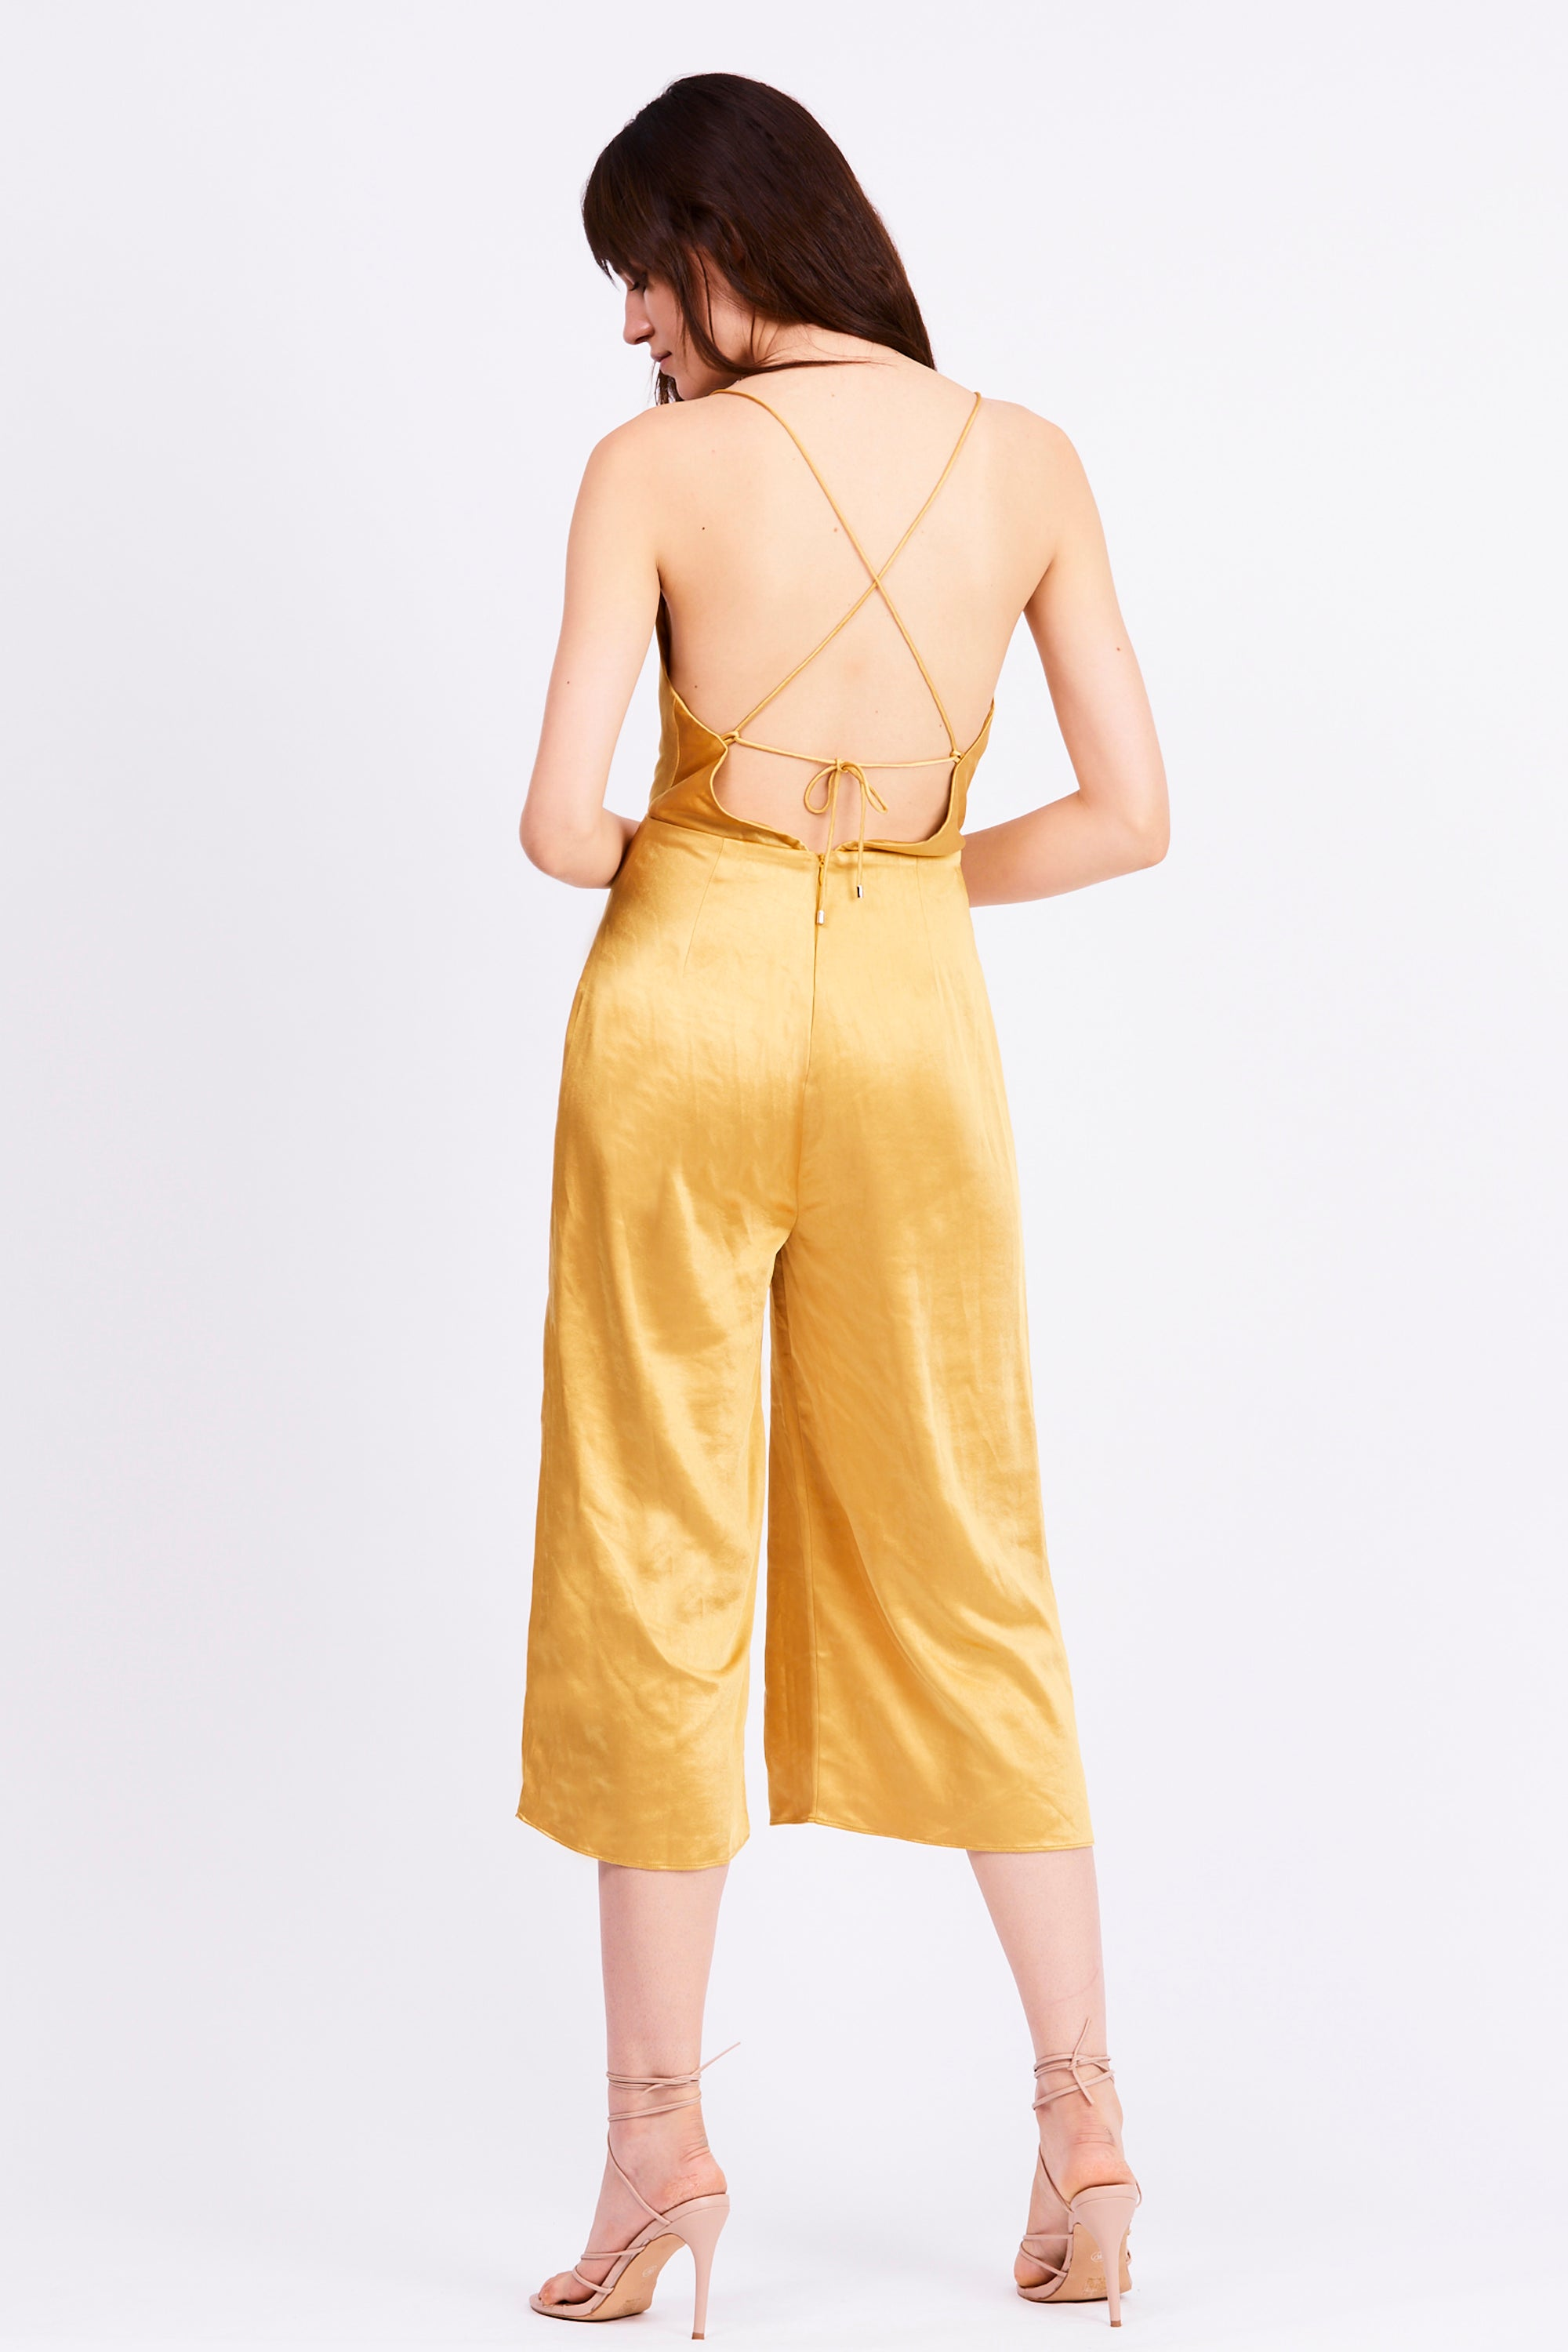 FINAL SAY BIAS JUMPSUIT | CANARY